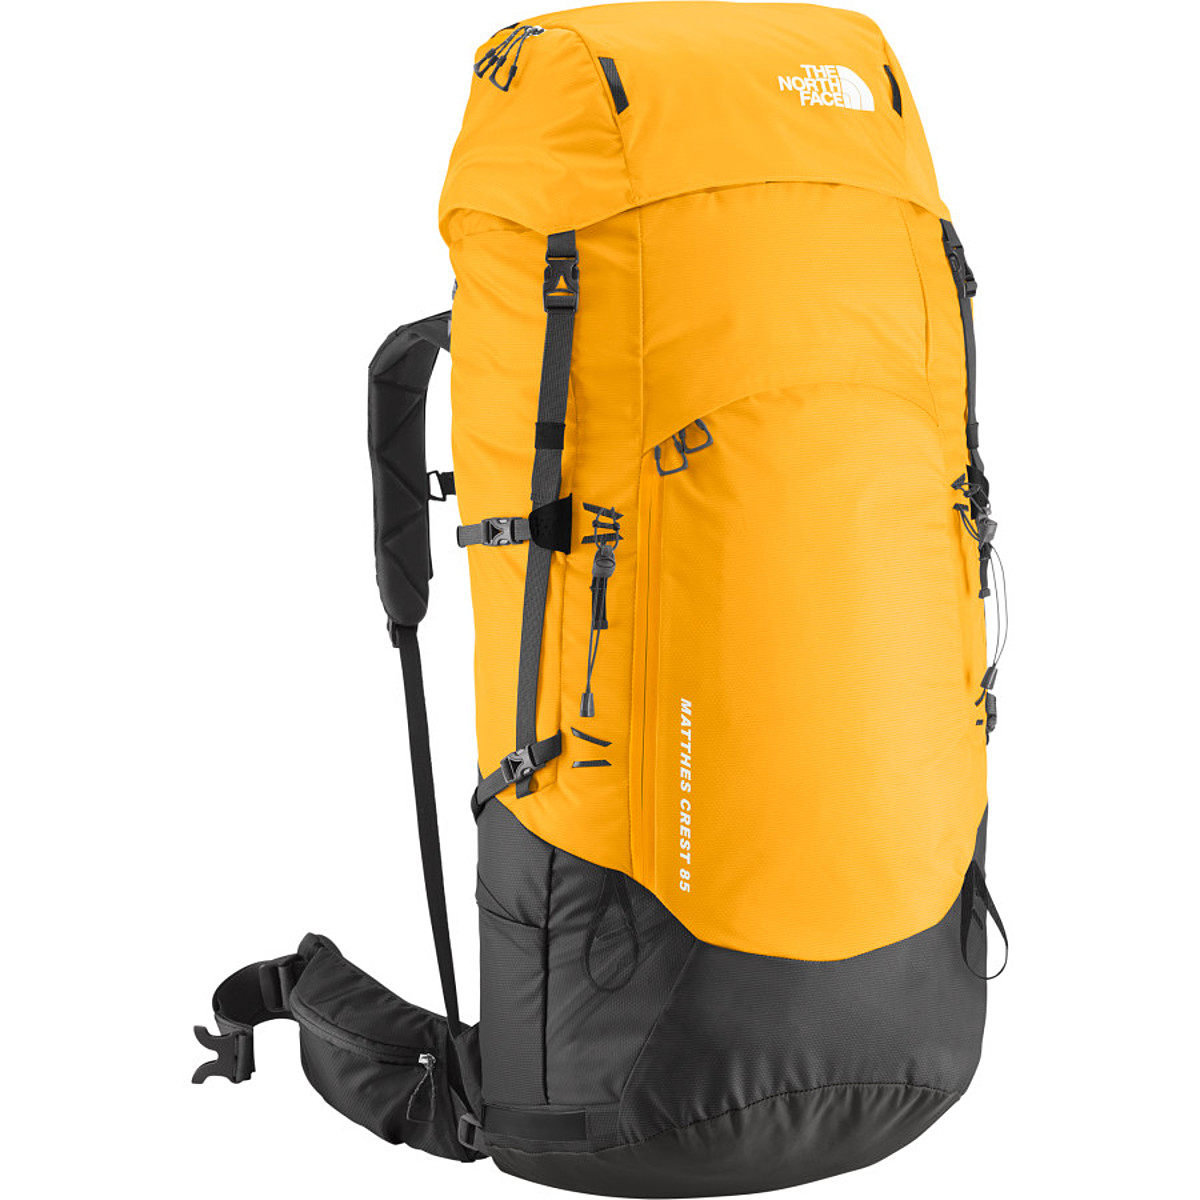 The North Face Matthes Crest 85 Pack